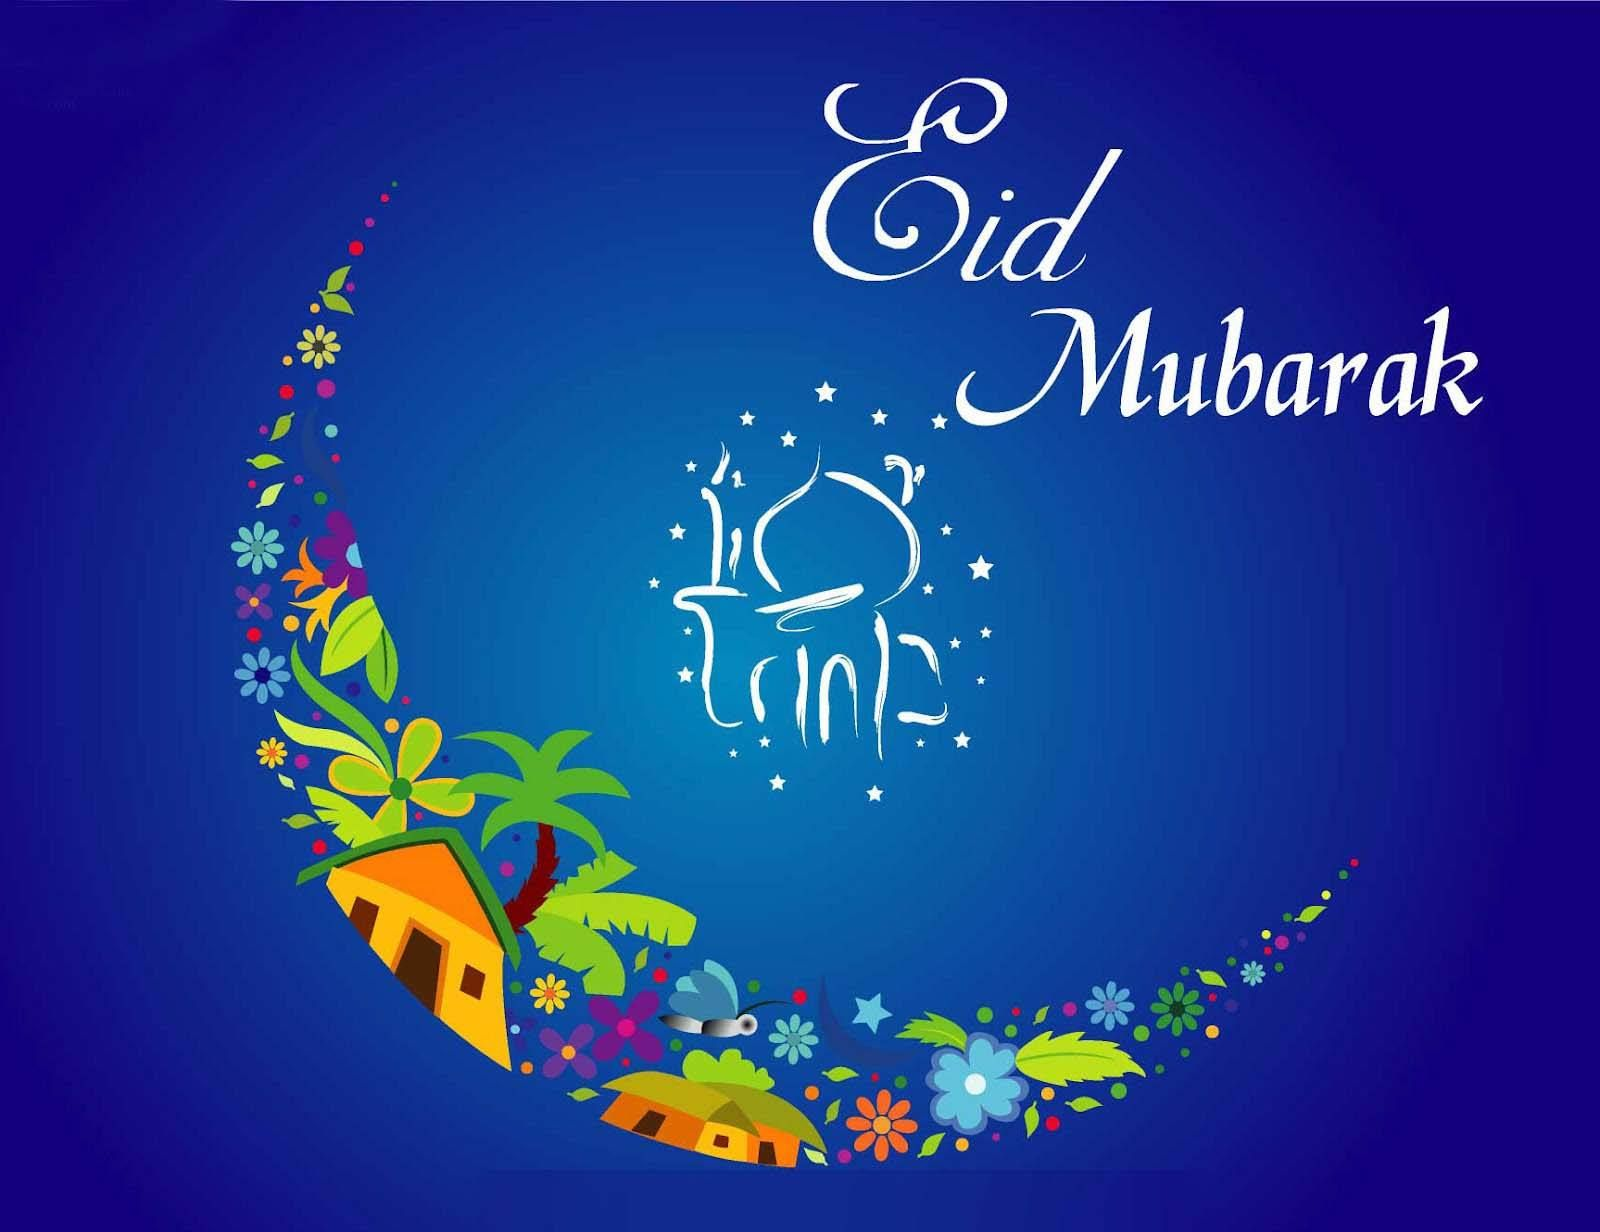 Ecards4u provides eid mubarak eid wishes eid greetings happy eid ecards4u provides eid mubarak eid wishes eid greetings happy eid mubarak ramzan kristyandbryce Choice Image